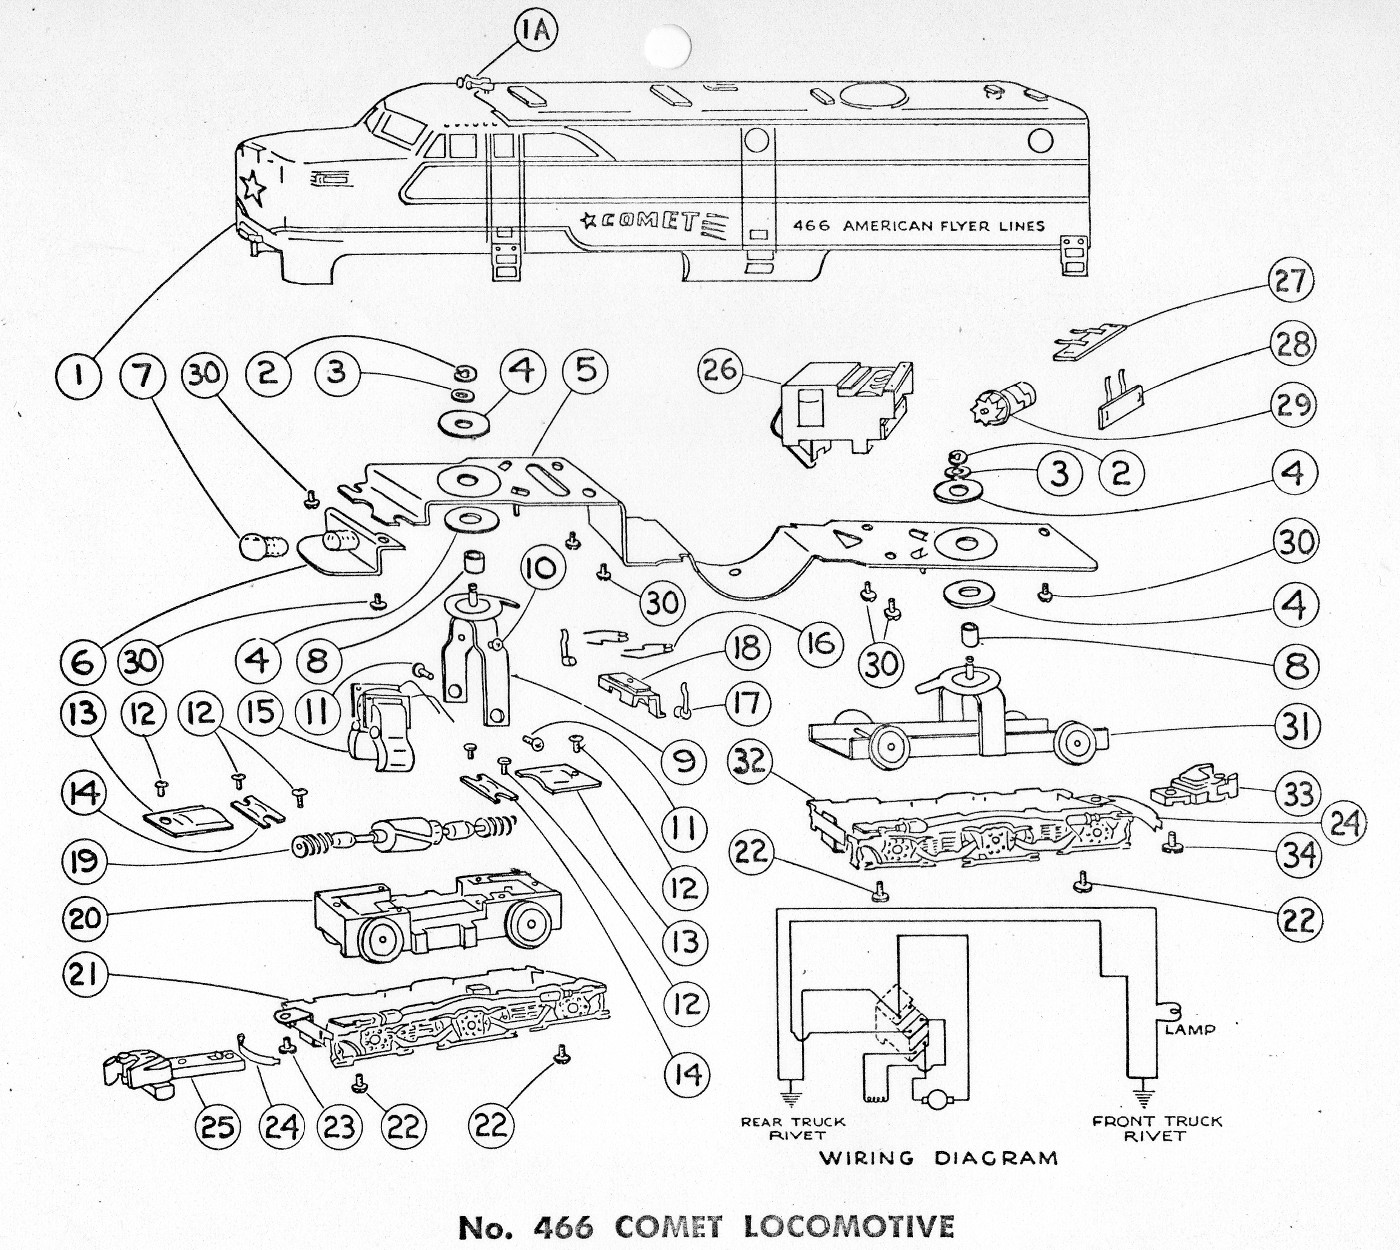 American Flyer Locomotive 466 Parts List Amp Diagram